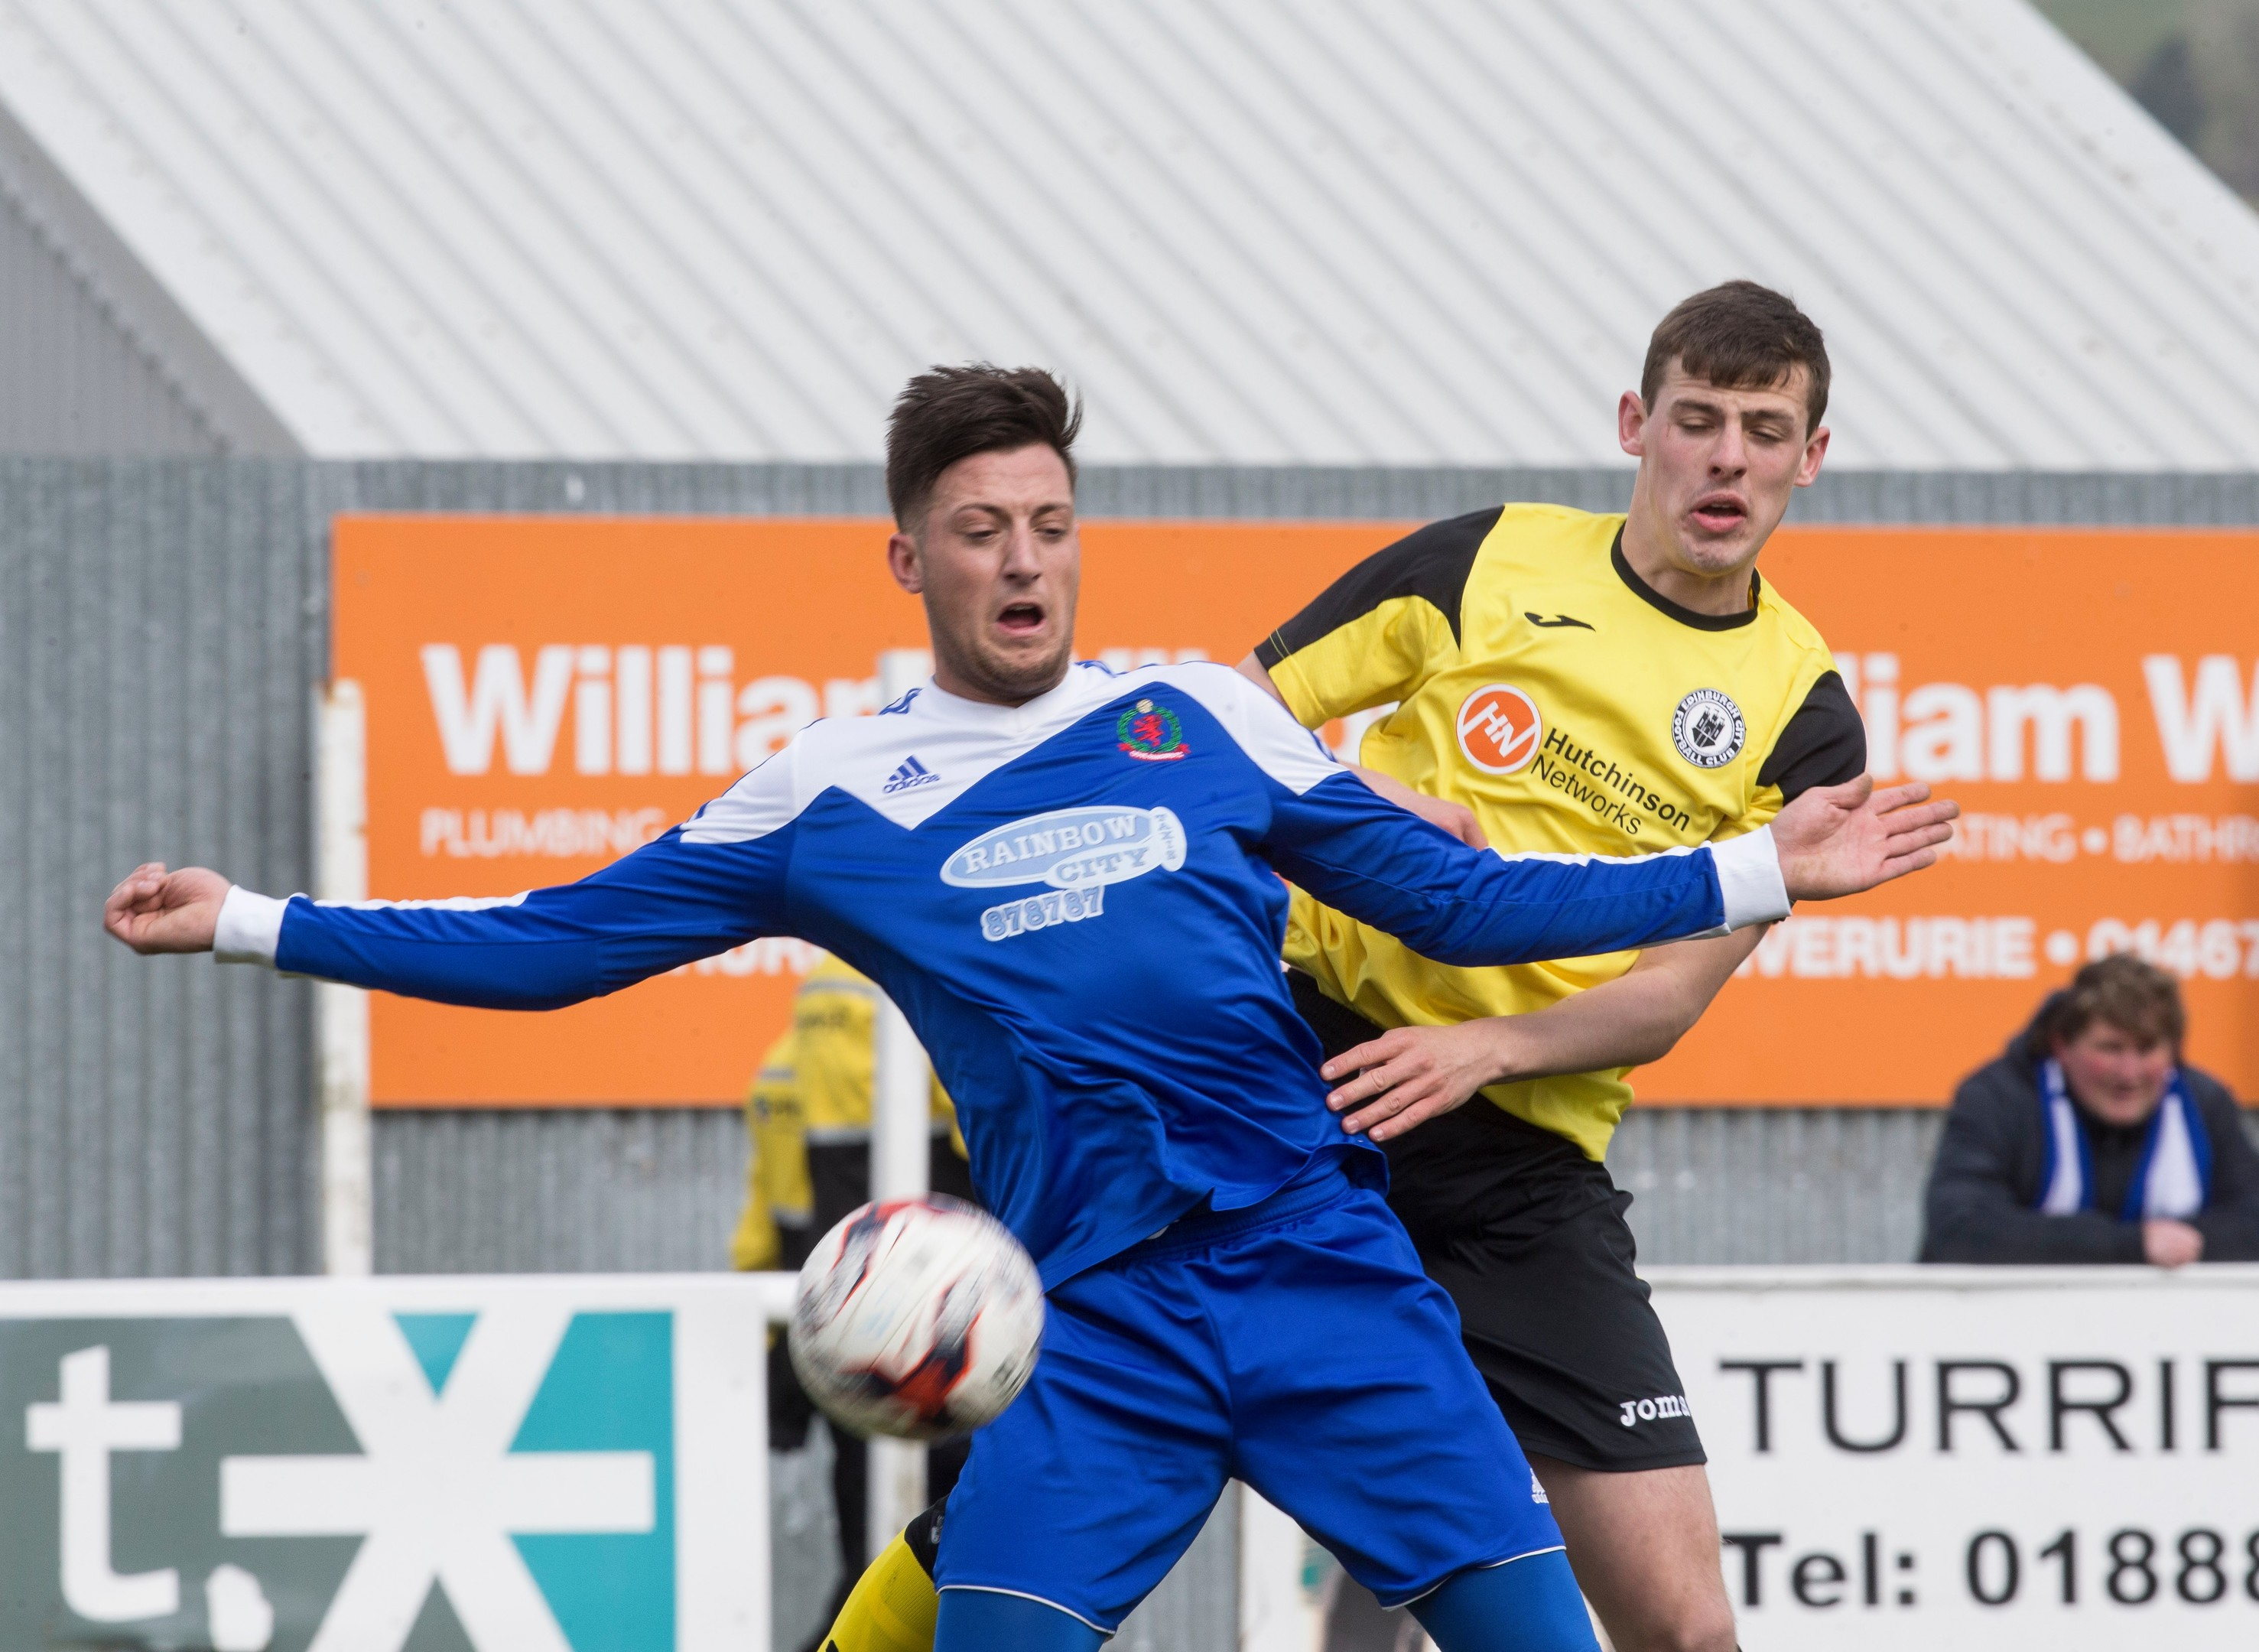 Cove's Connor Scully playing against Edinburgh City in the League Two play-off first leg.